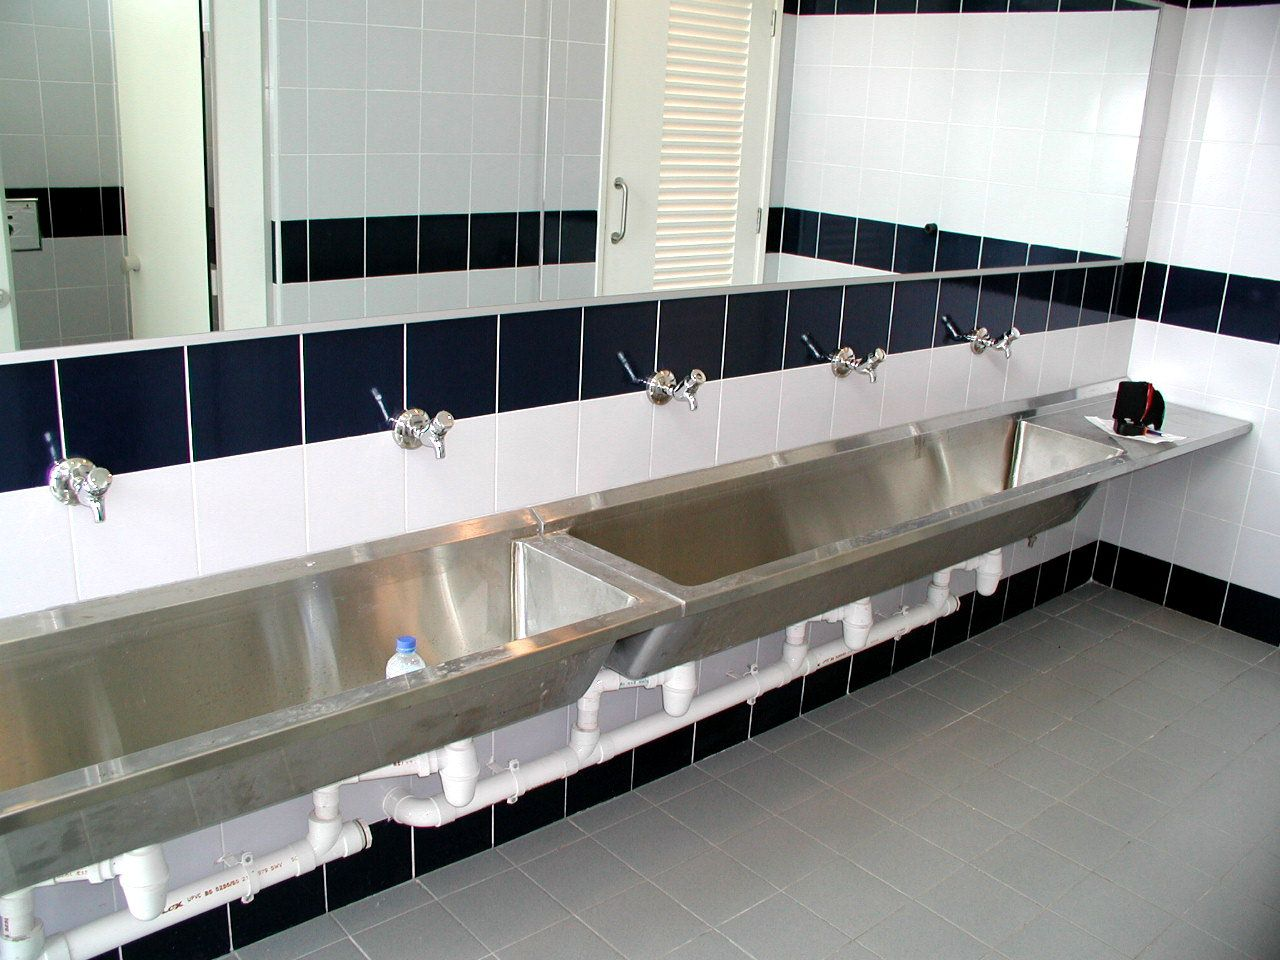 Stainless steel bathroom sinks for commercial areas  Home